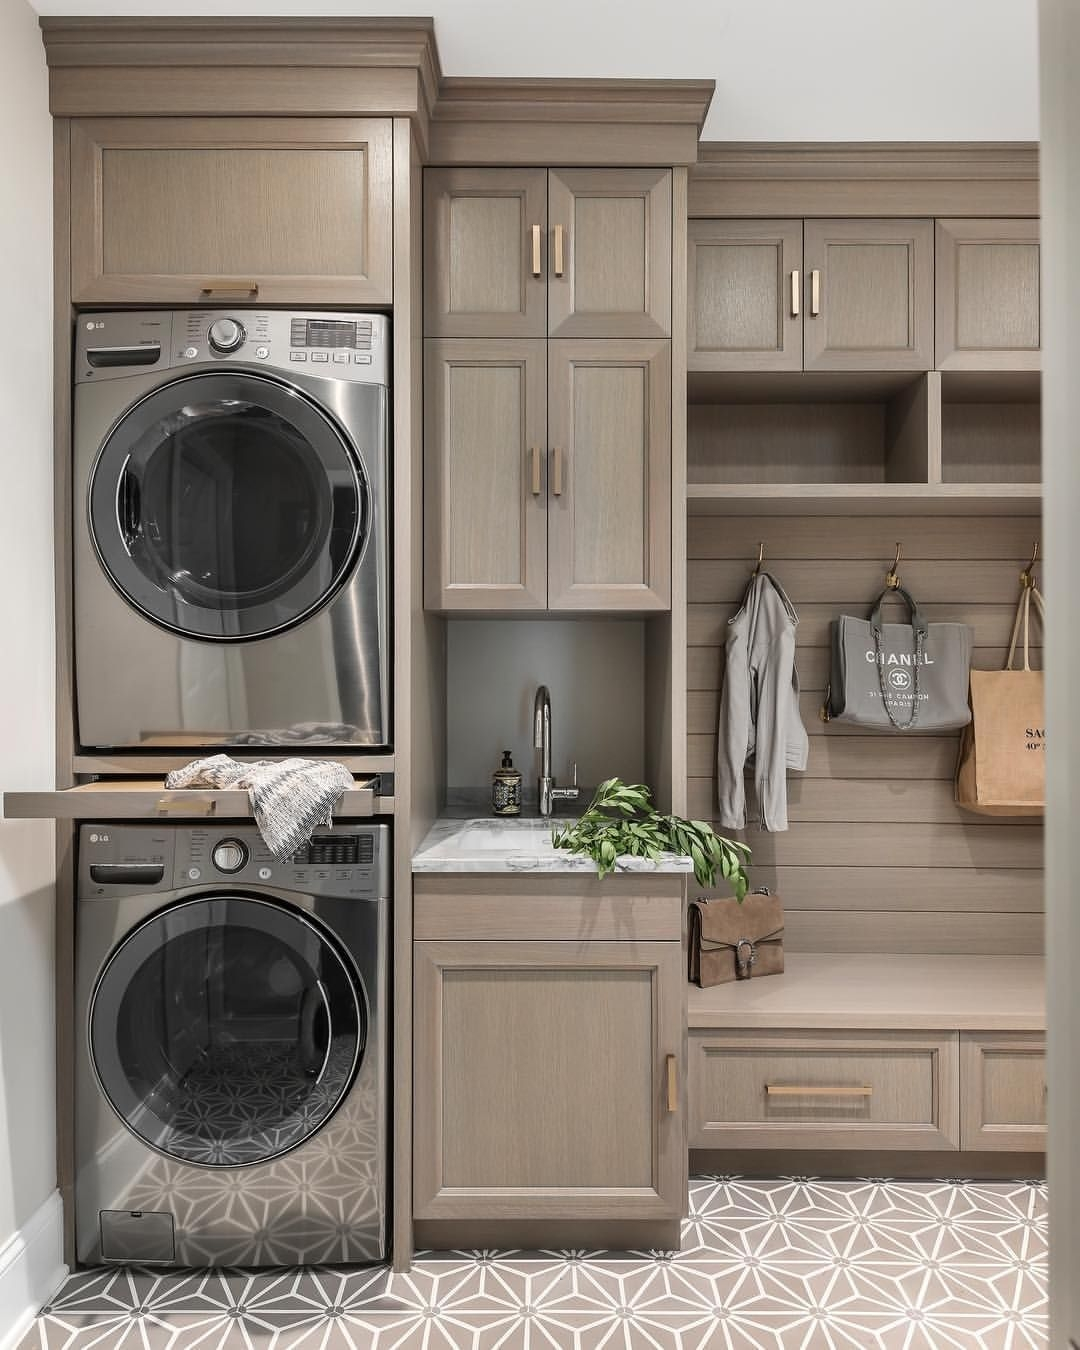 Best Small Laundry Room Design Ideas42